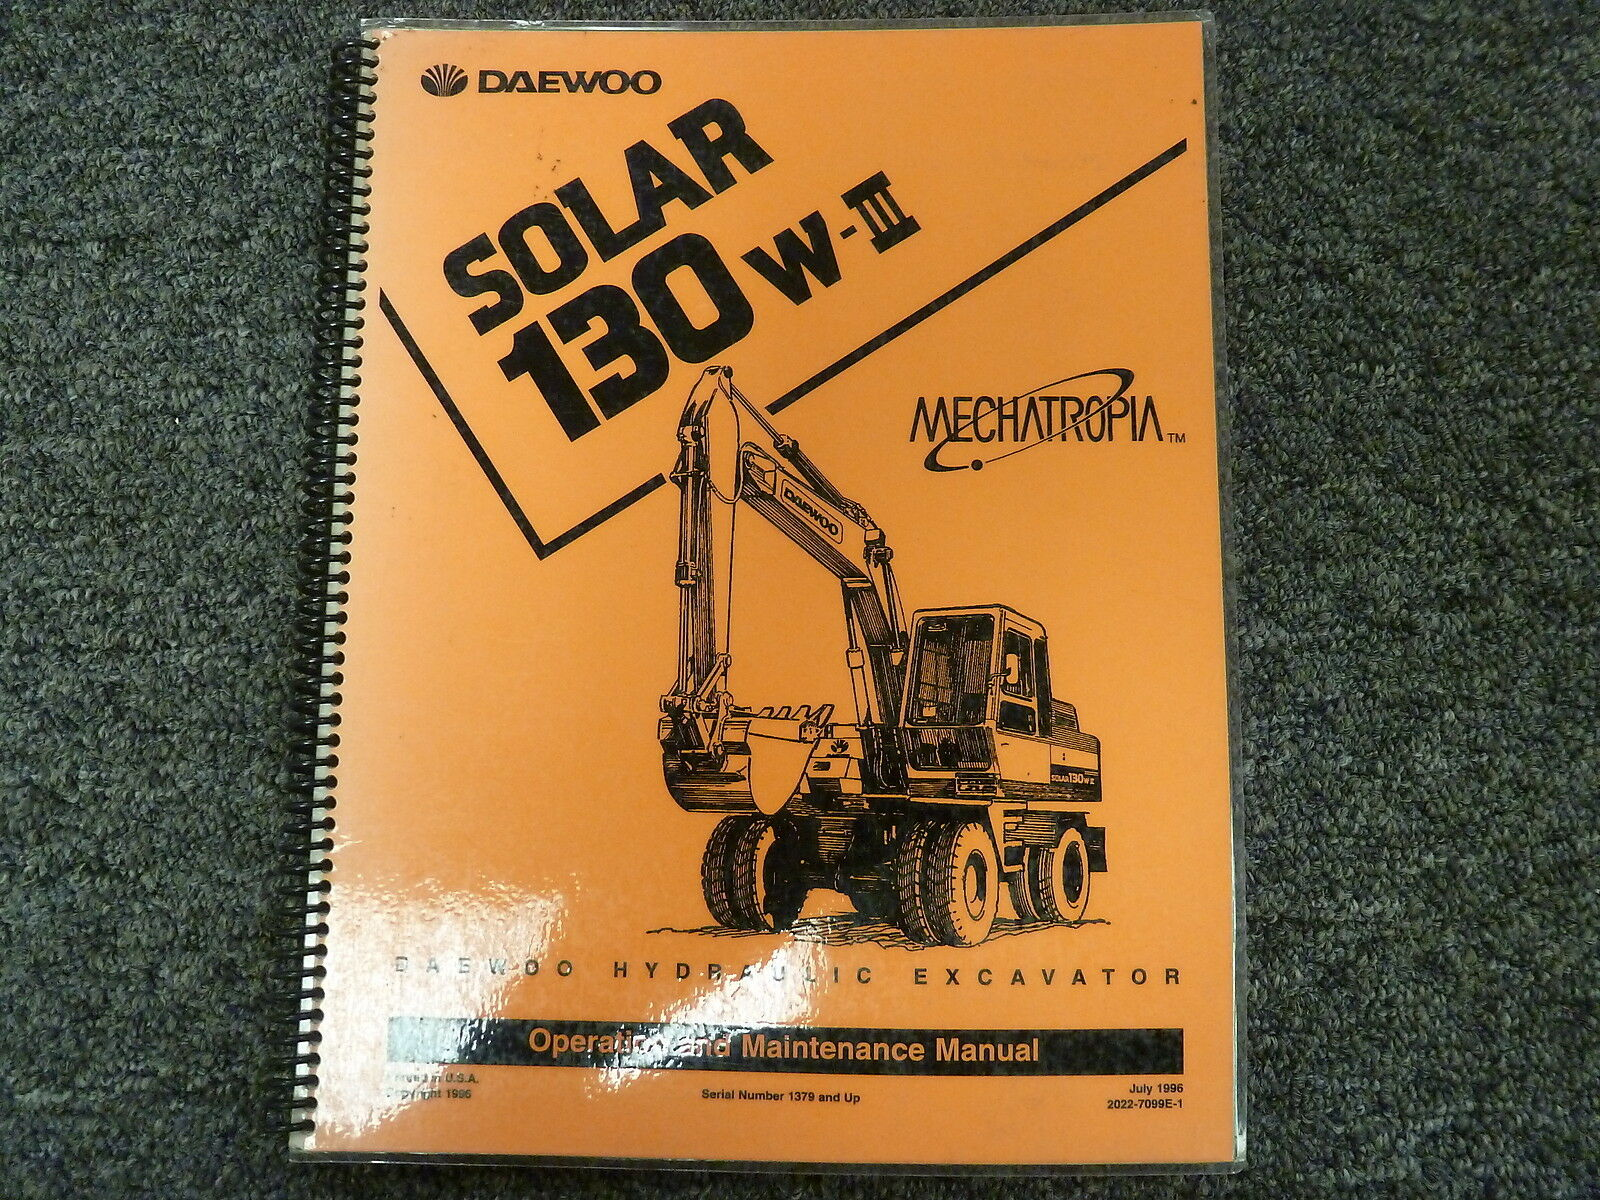 Daewoo Solar 130W-III Hydraulic Excavator Owner Operator Maintenance Manual  1 of 1Only 1 available See More